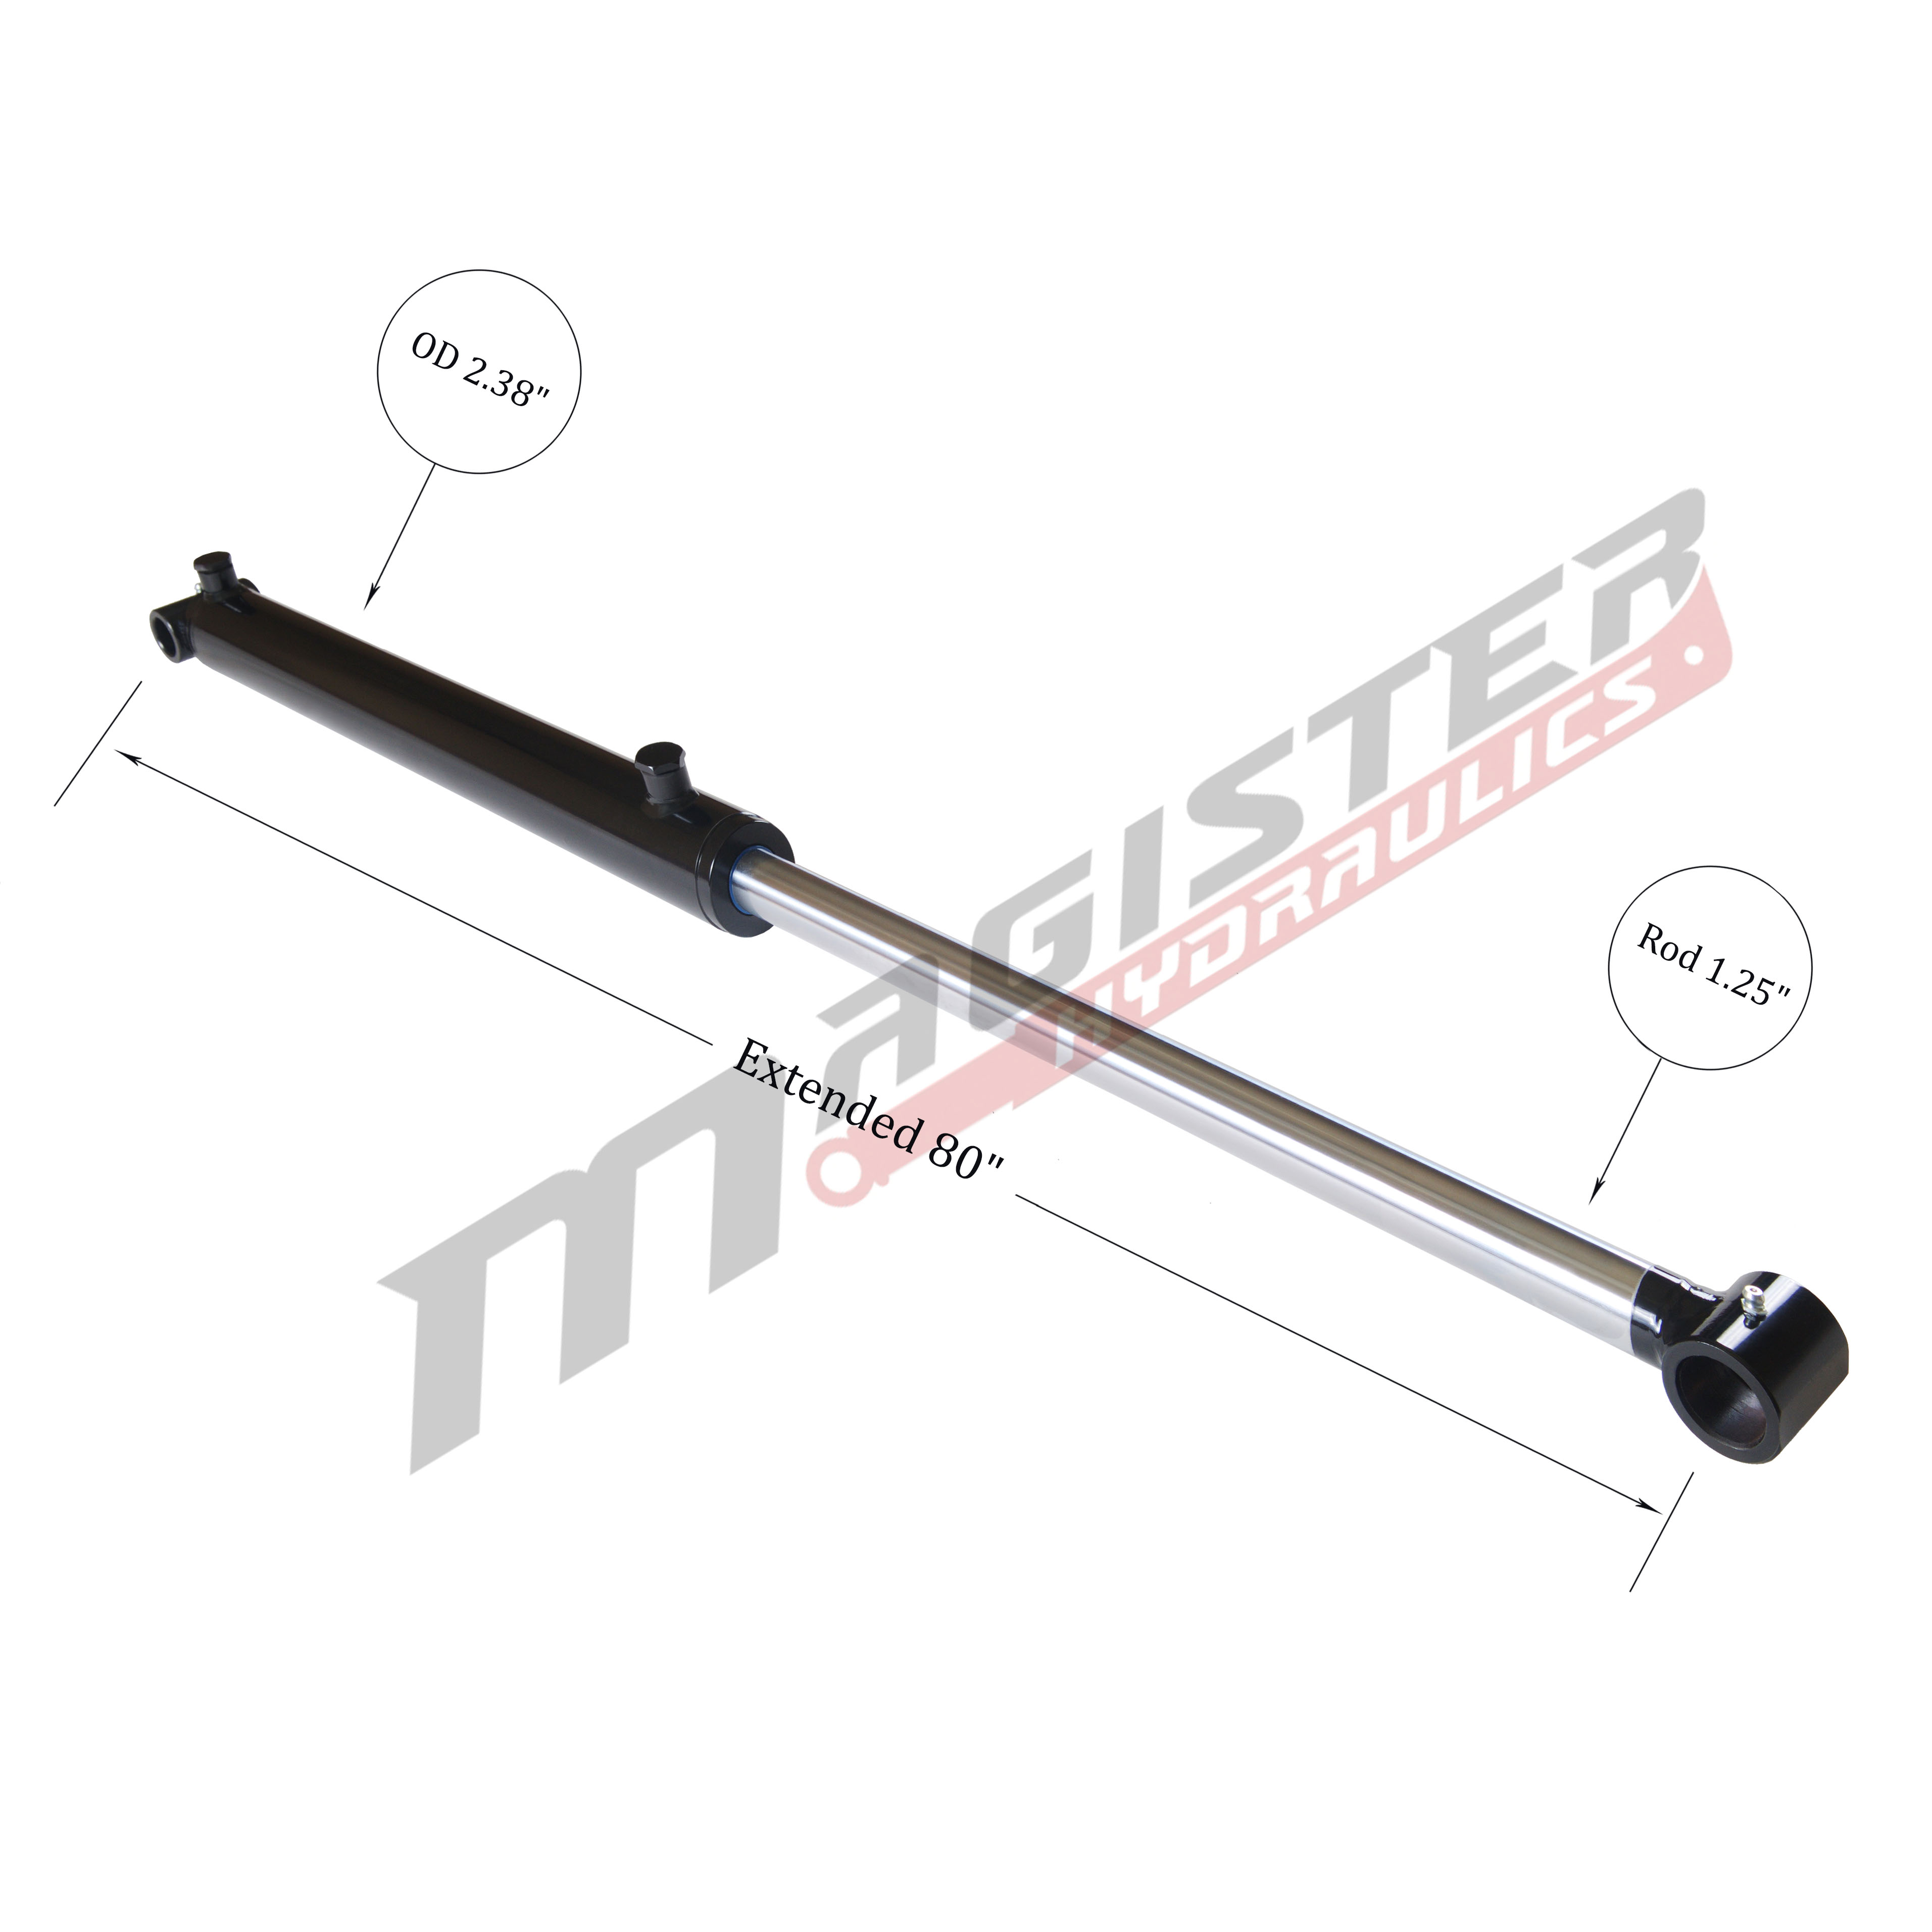 2 bore x 36 stroke hydraulic cylinder, welded cross tube double acting cylinder | Magister Hydraulics